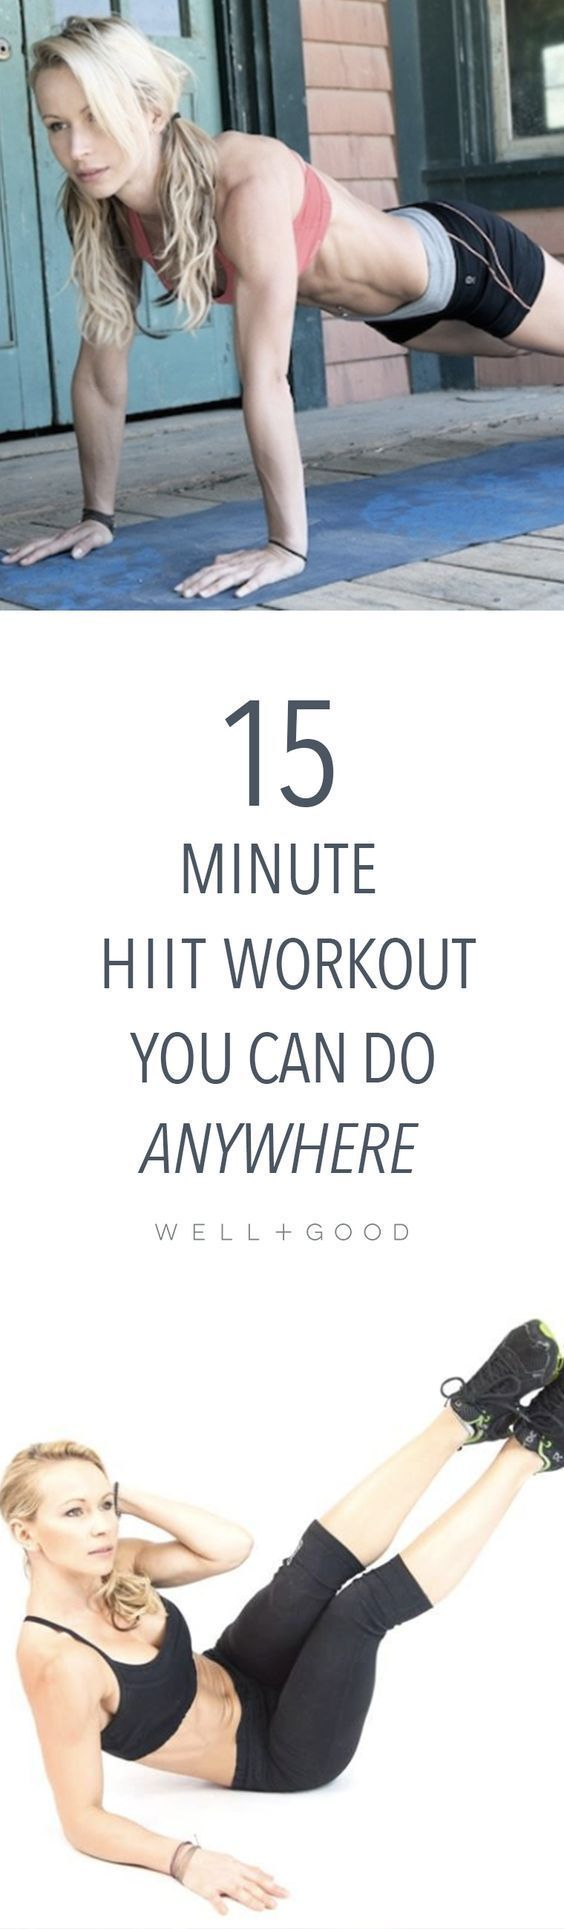 the 15 minute HIIT workout you can do anywhere